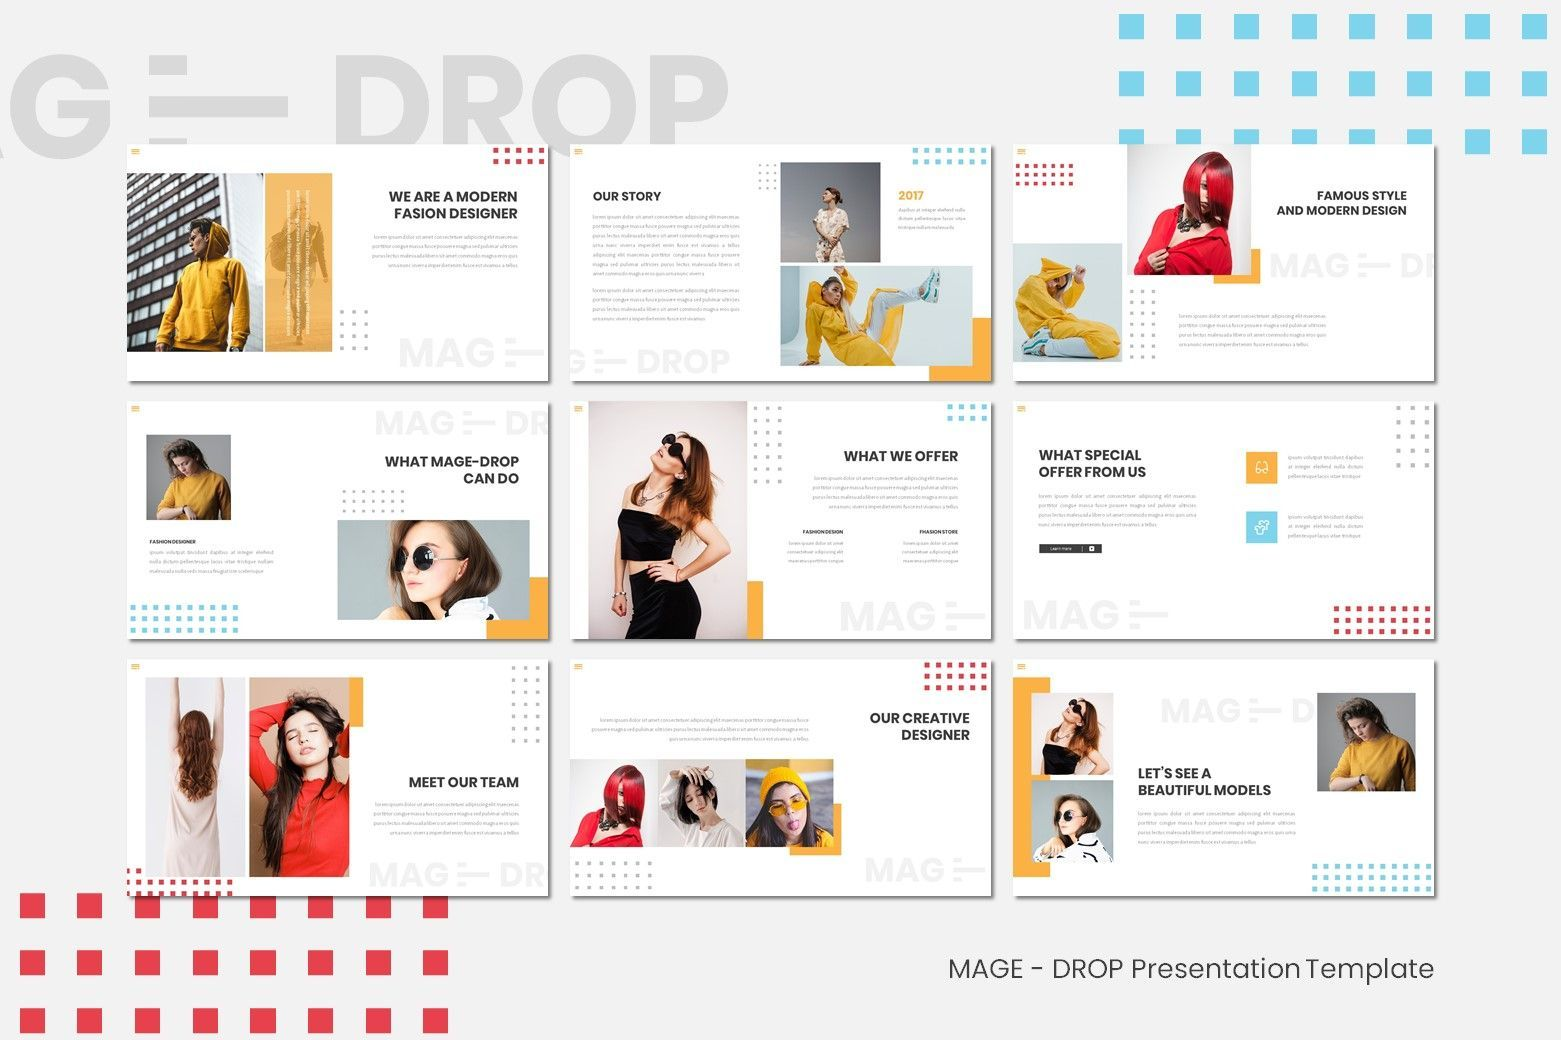 Mage Drop - Google Slides Template, Slide 3, 07997, Presentation Templates — PoweredTemplate.com